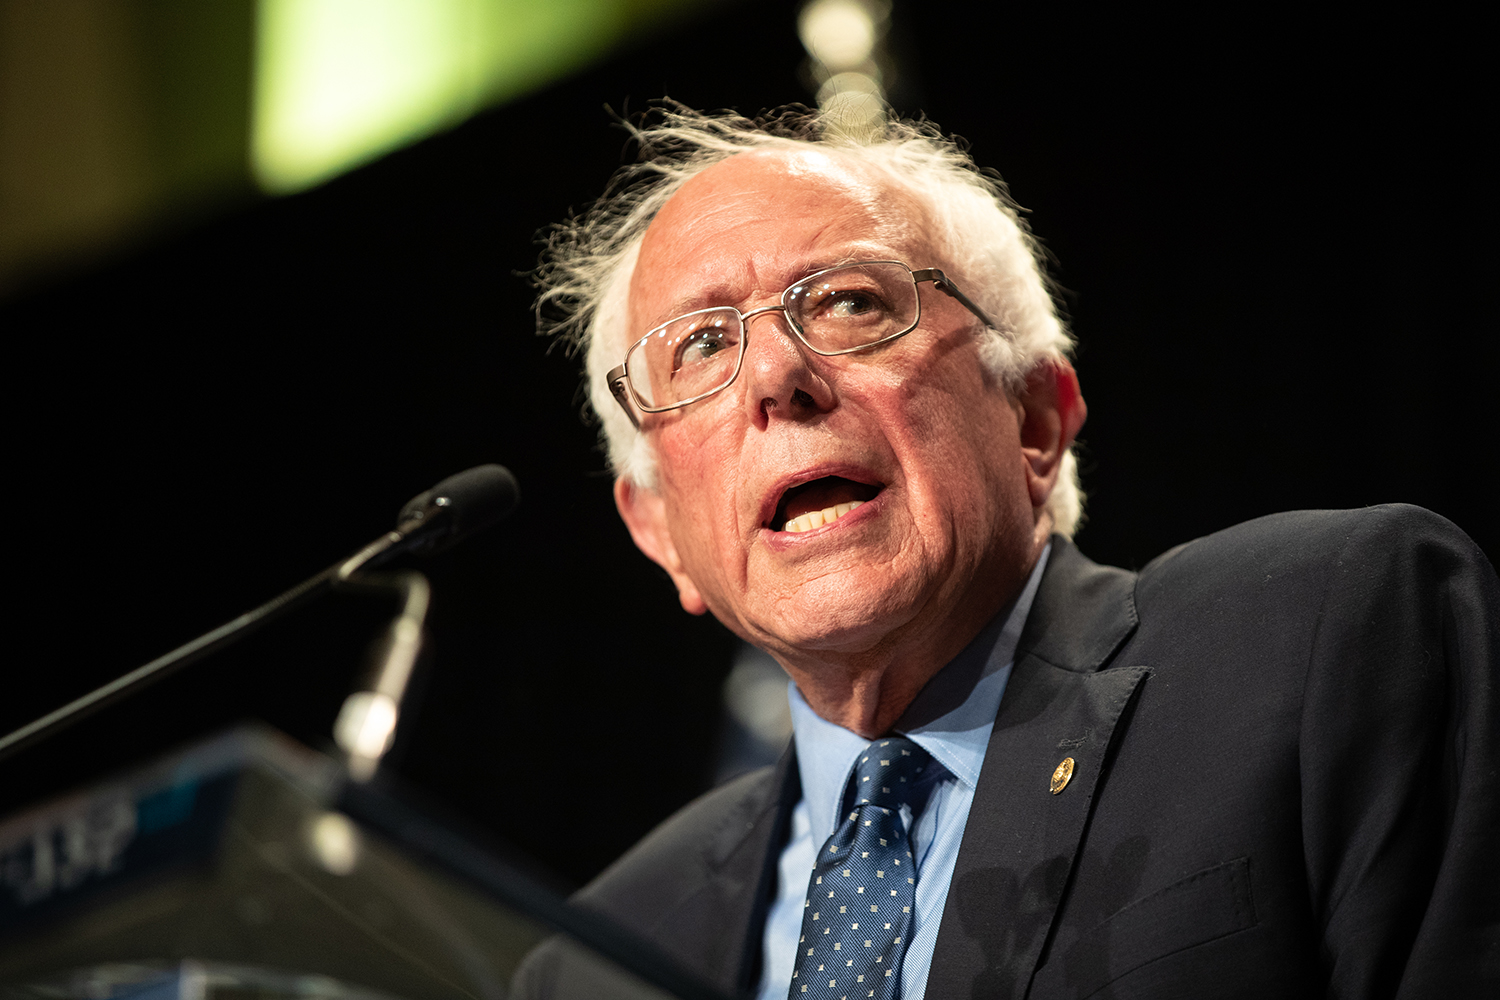 2020 Democratic Presidential candidate Bernie Sanders speaks at Doubletree Hilton Hotel in Cedar Rapids on Sunday, June 9, 2019. 19 democrats spoke at the Iowa Democratic Party Hall of Fame.